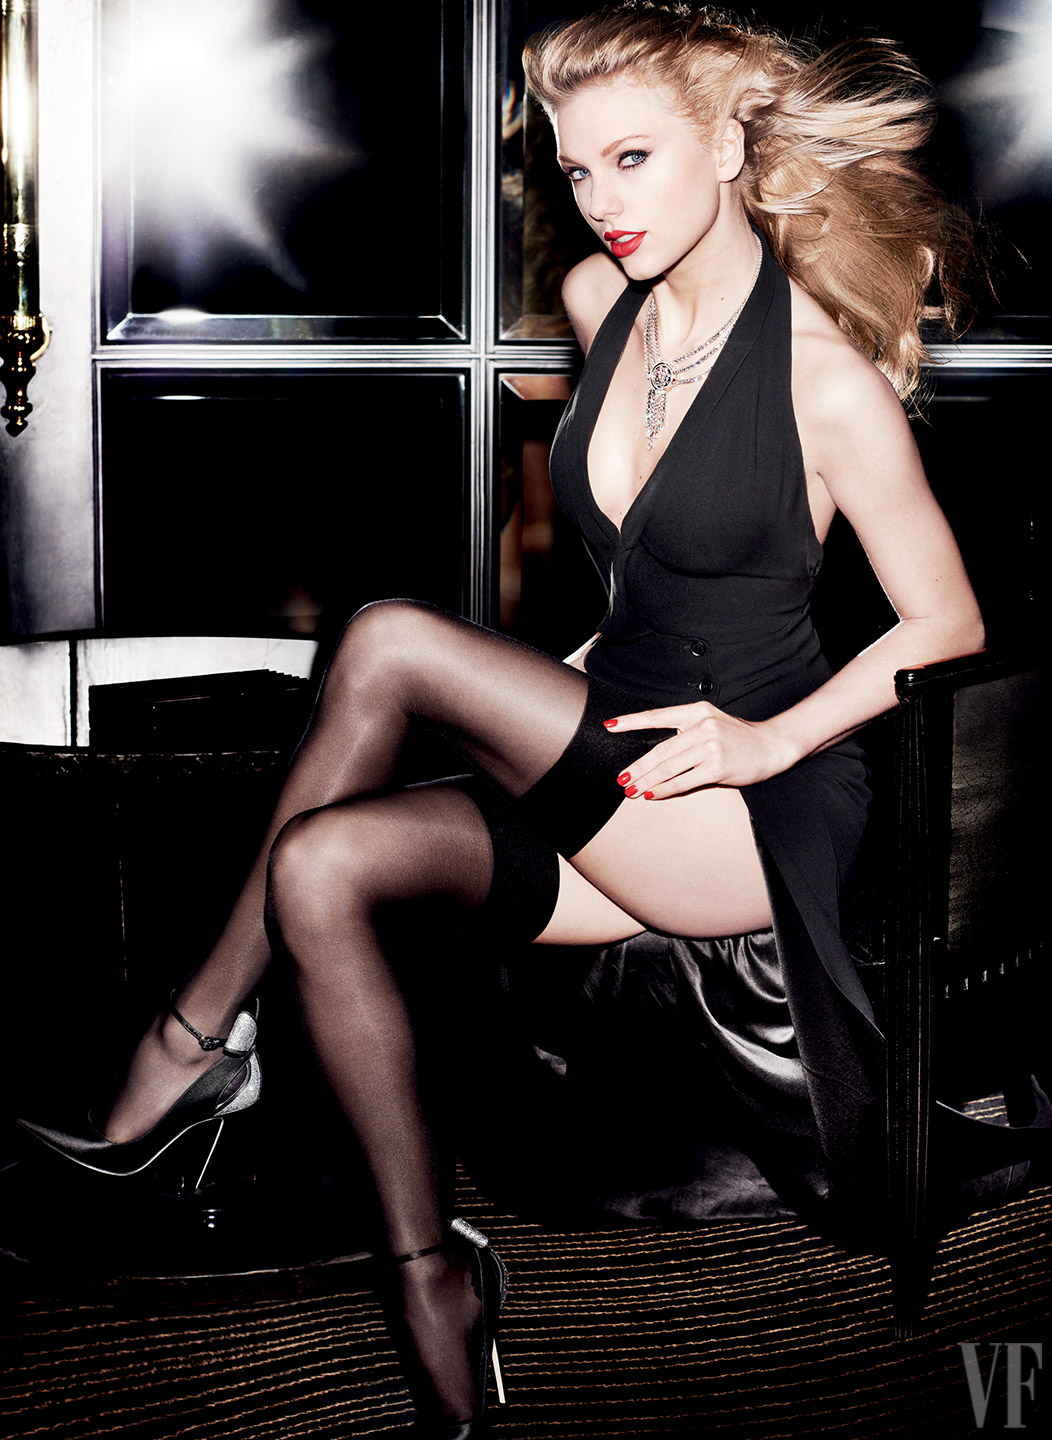 Pictures Taylor Swift In Hot Lingerie For Vanity Fair 2015 Justrandomthings